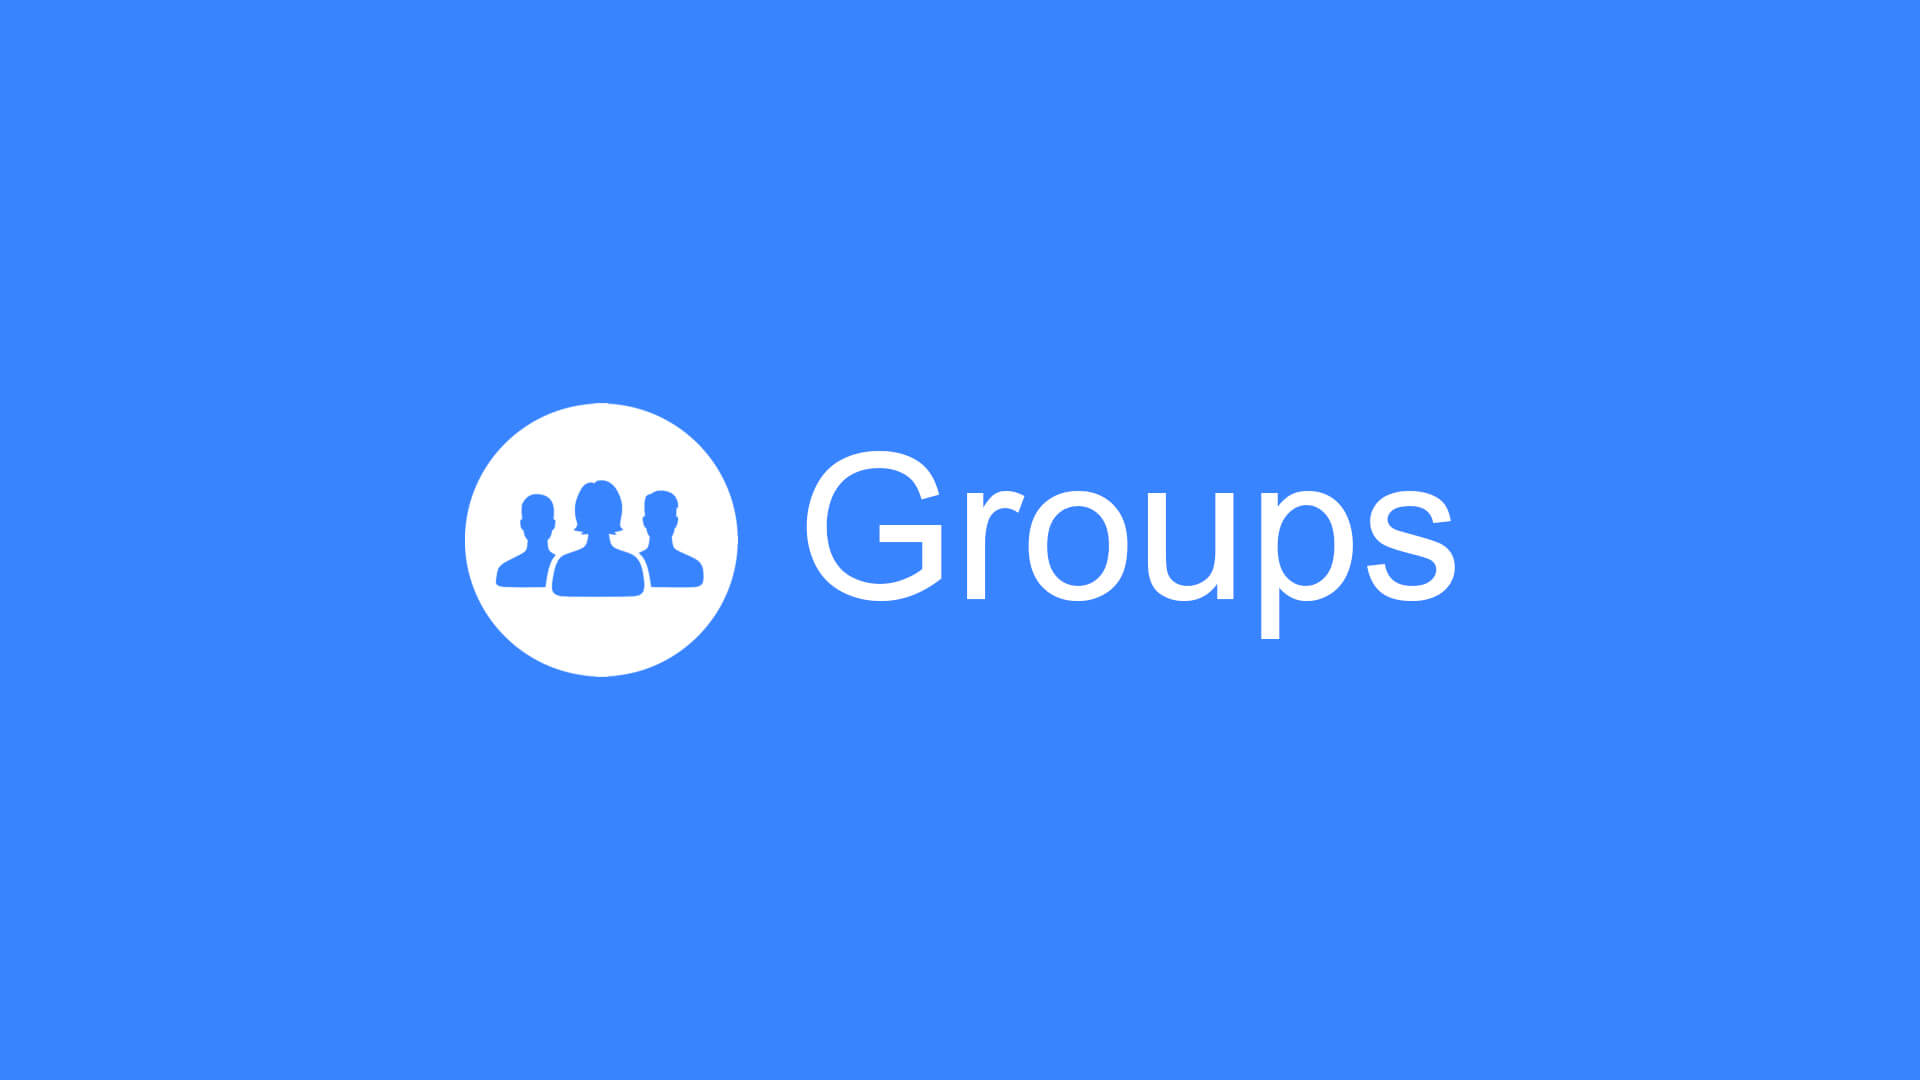 Ill share your link in my group and get amazing traffic